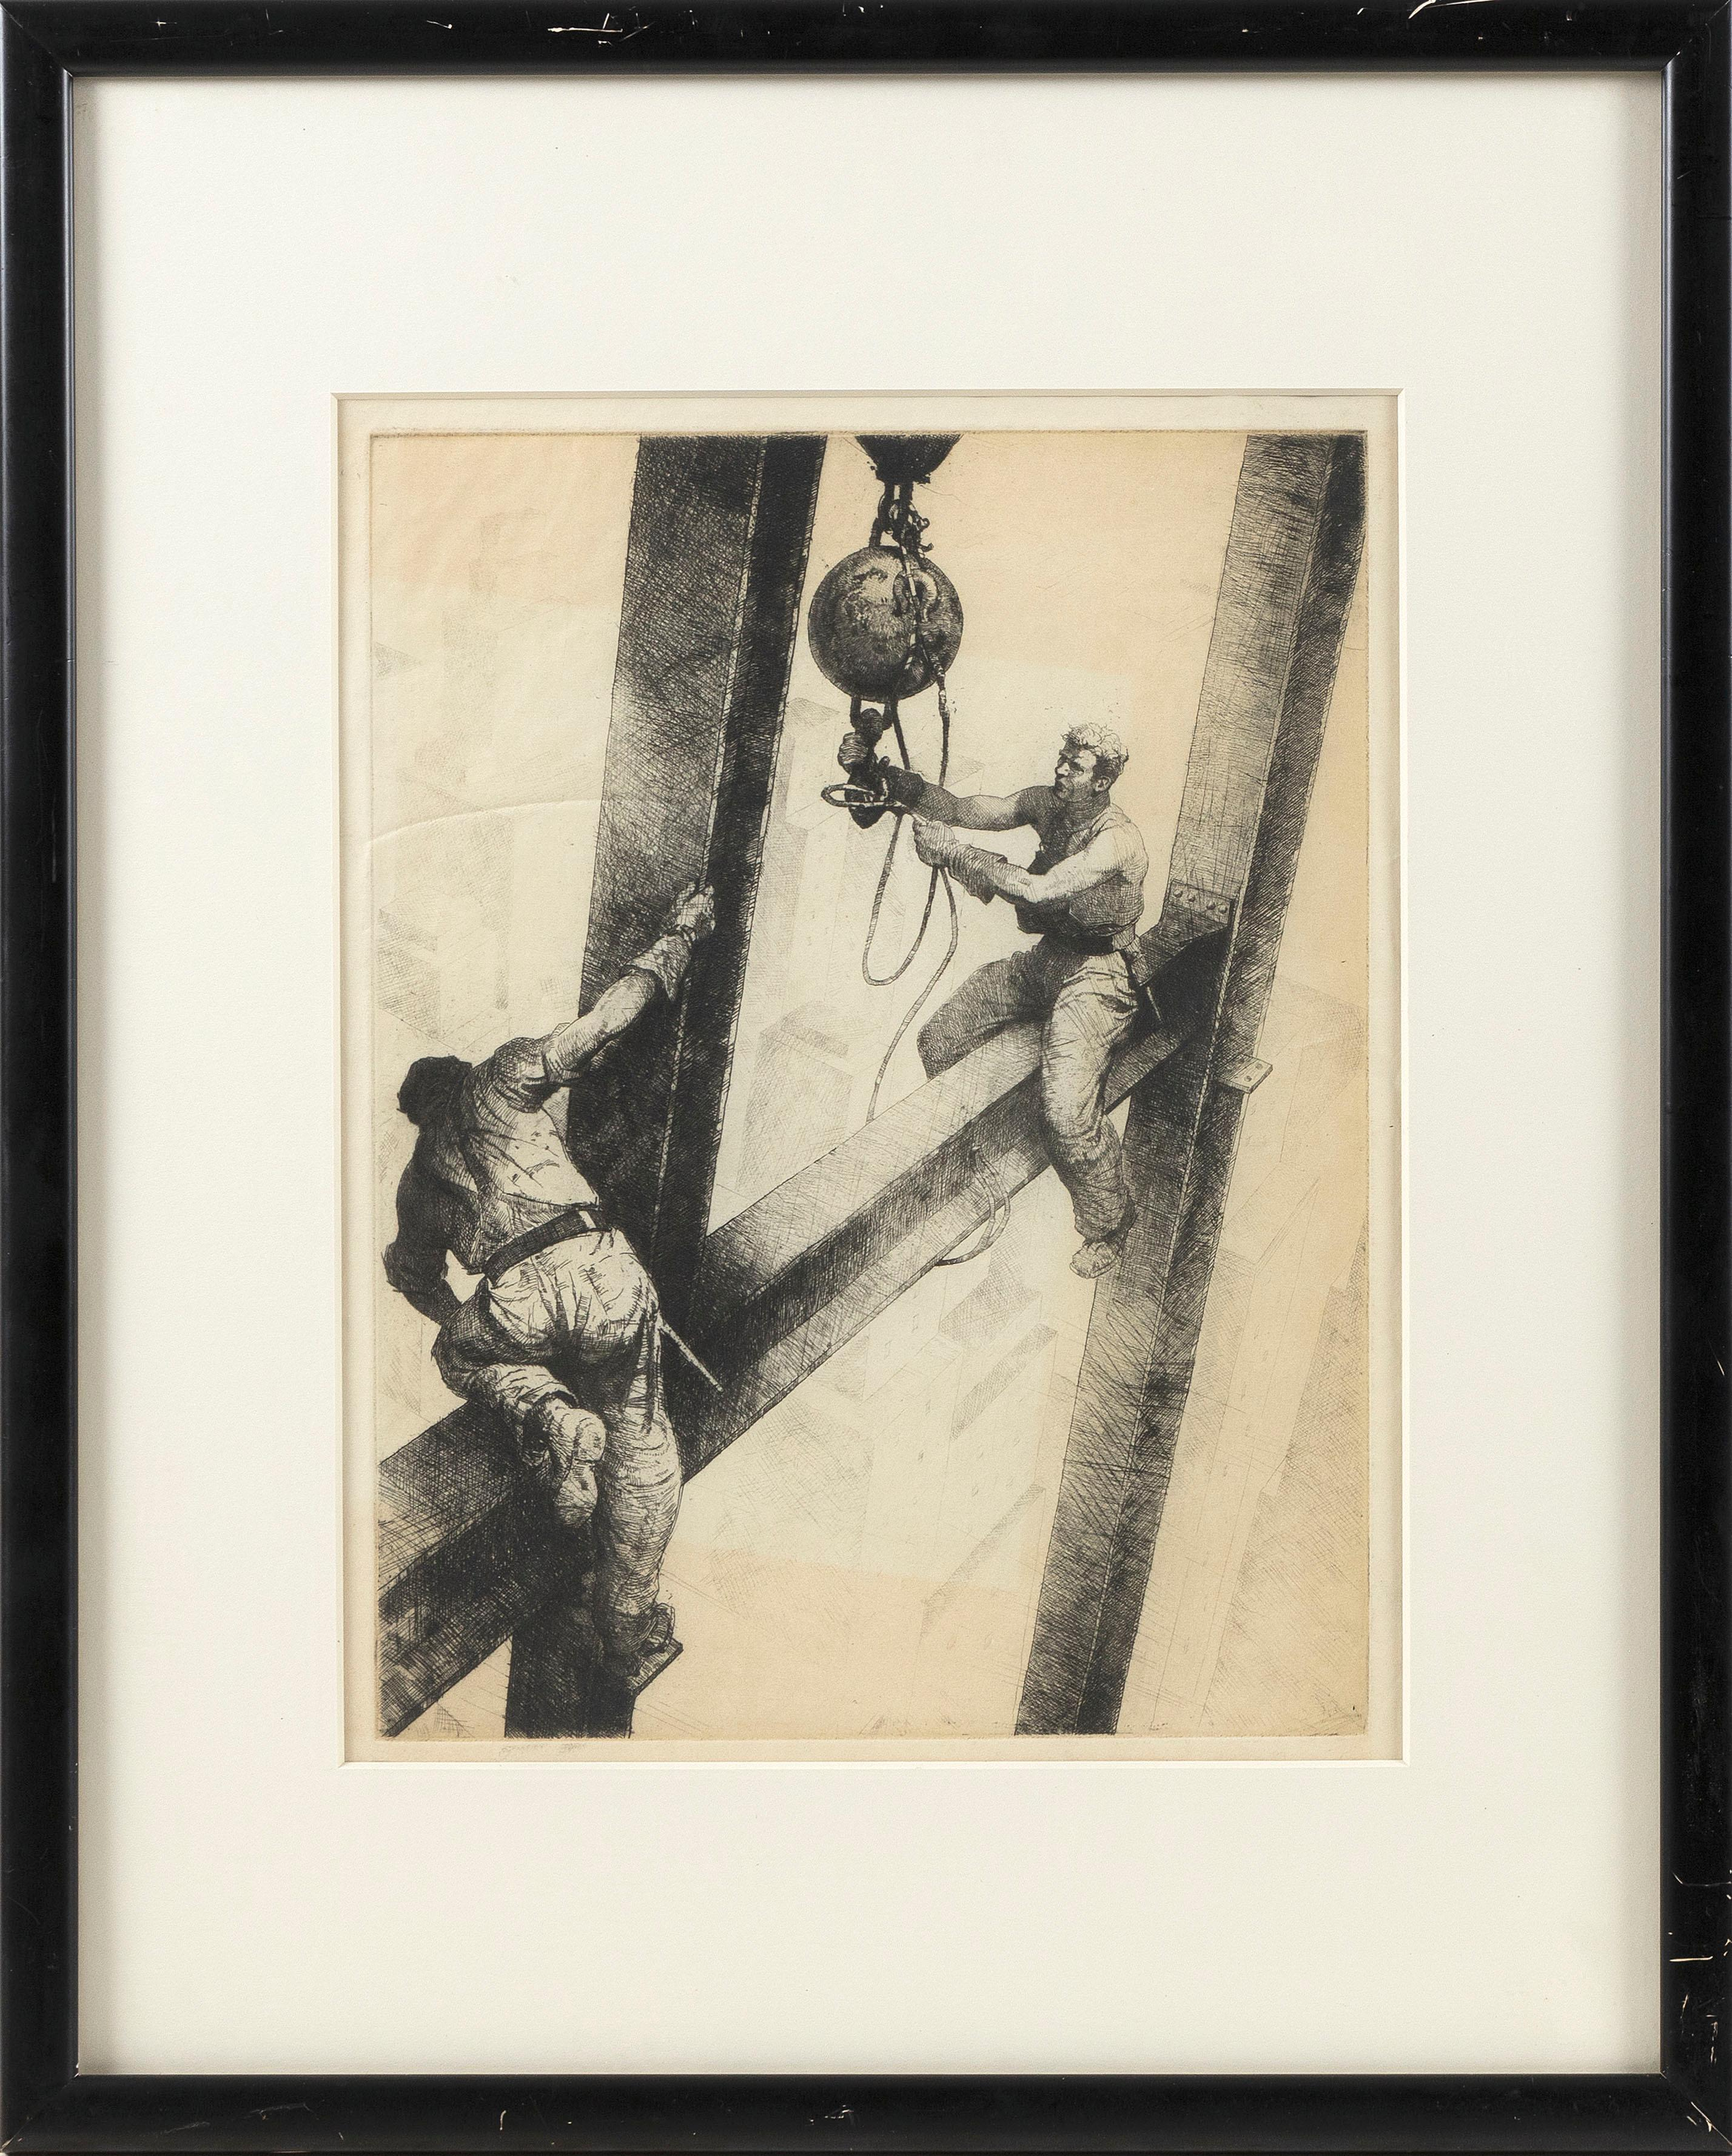 """JAMES EDMUND ALLEN (New York/Louisiana, 1894-1964), """"The Connectors""""., Dry point etching, 12.5"""" x 9.75"""" to the plate line. Framed 21"""" x 17"""". Paper size 15.5"""" x 11.5""""."""